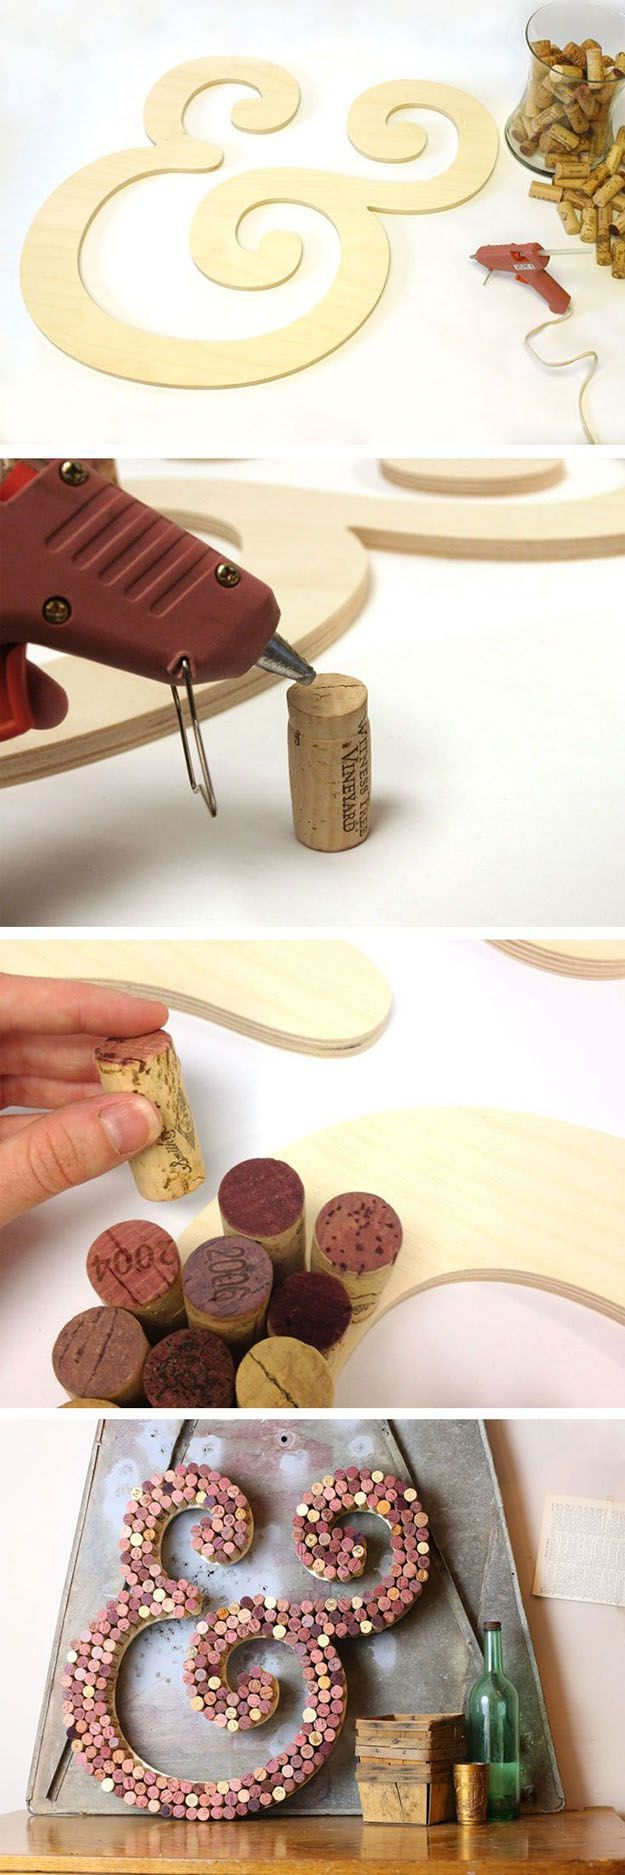 Easy Wine Cork DIY Wall Decor Projects - Wine Cork Letters - DIY Projects & Crafts by DIY JOY